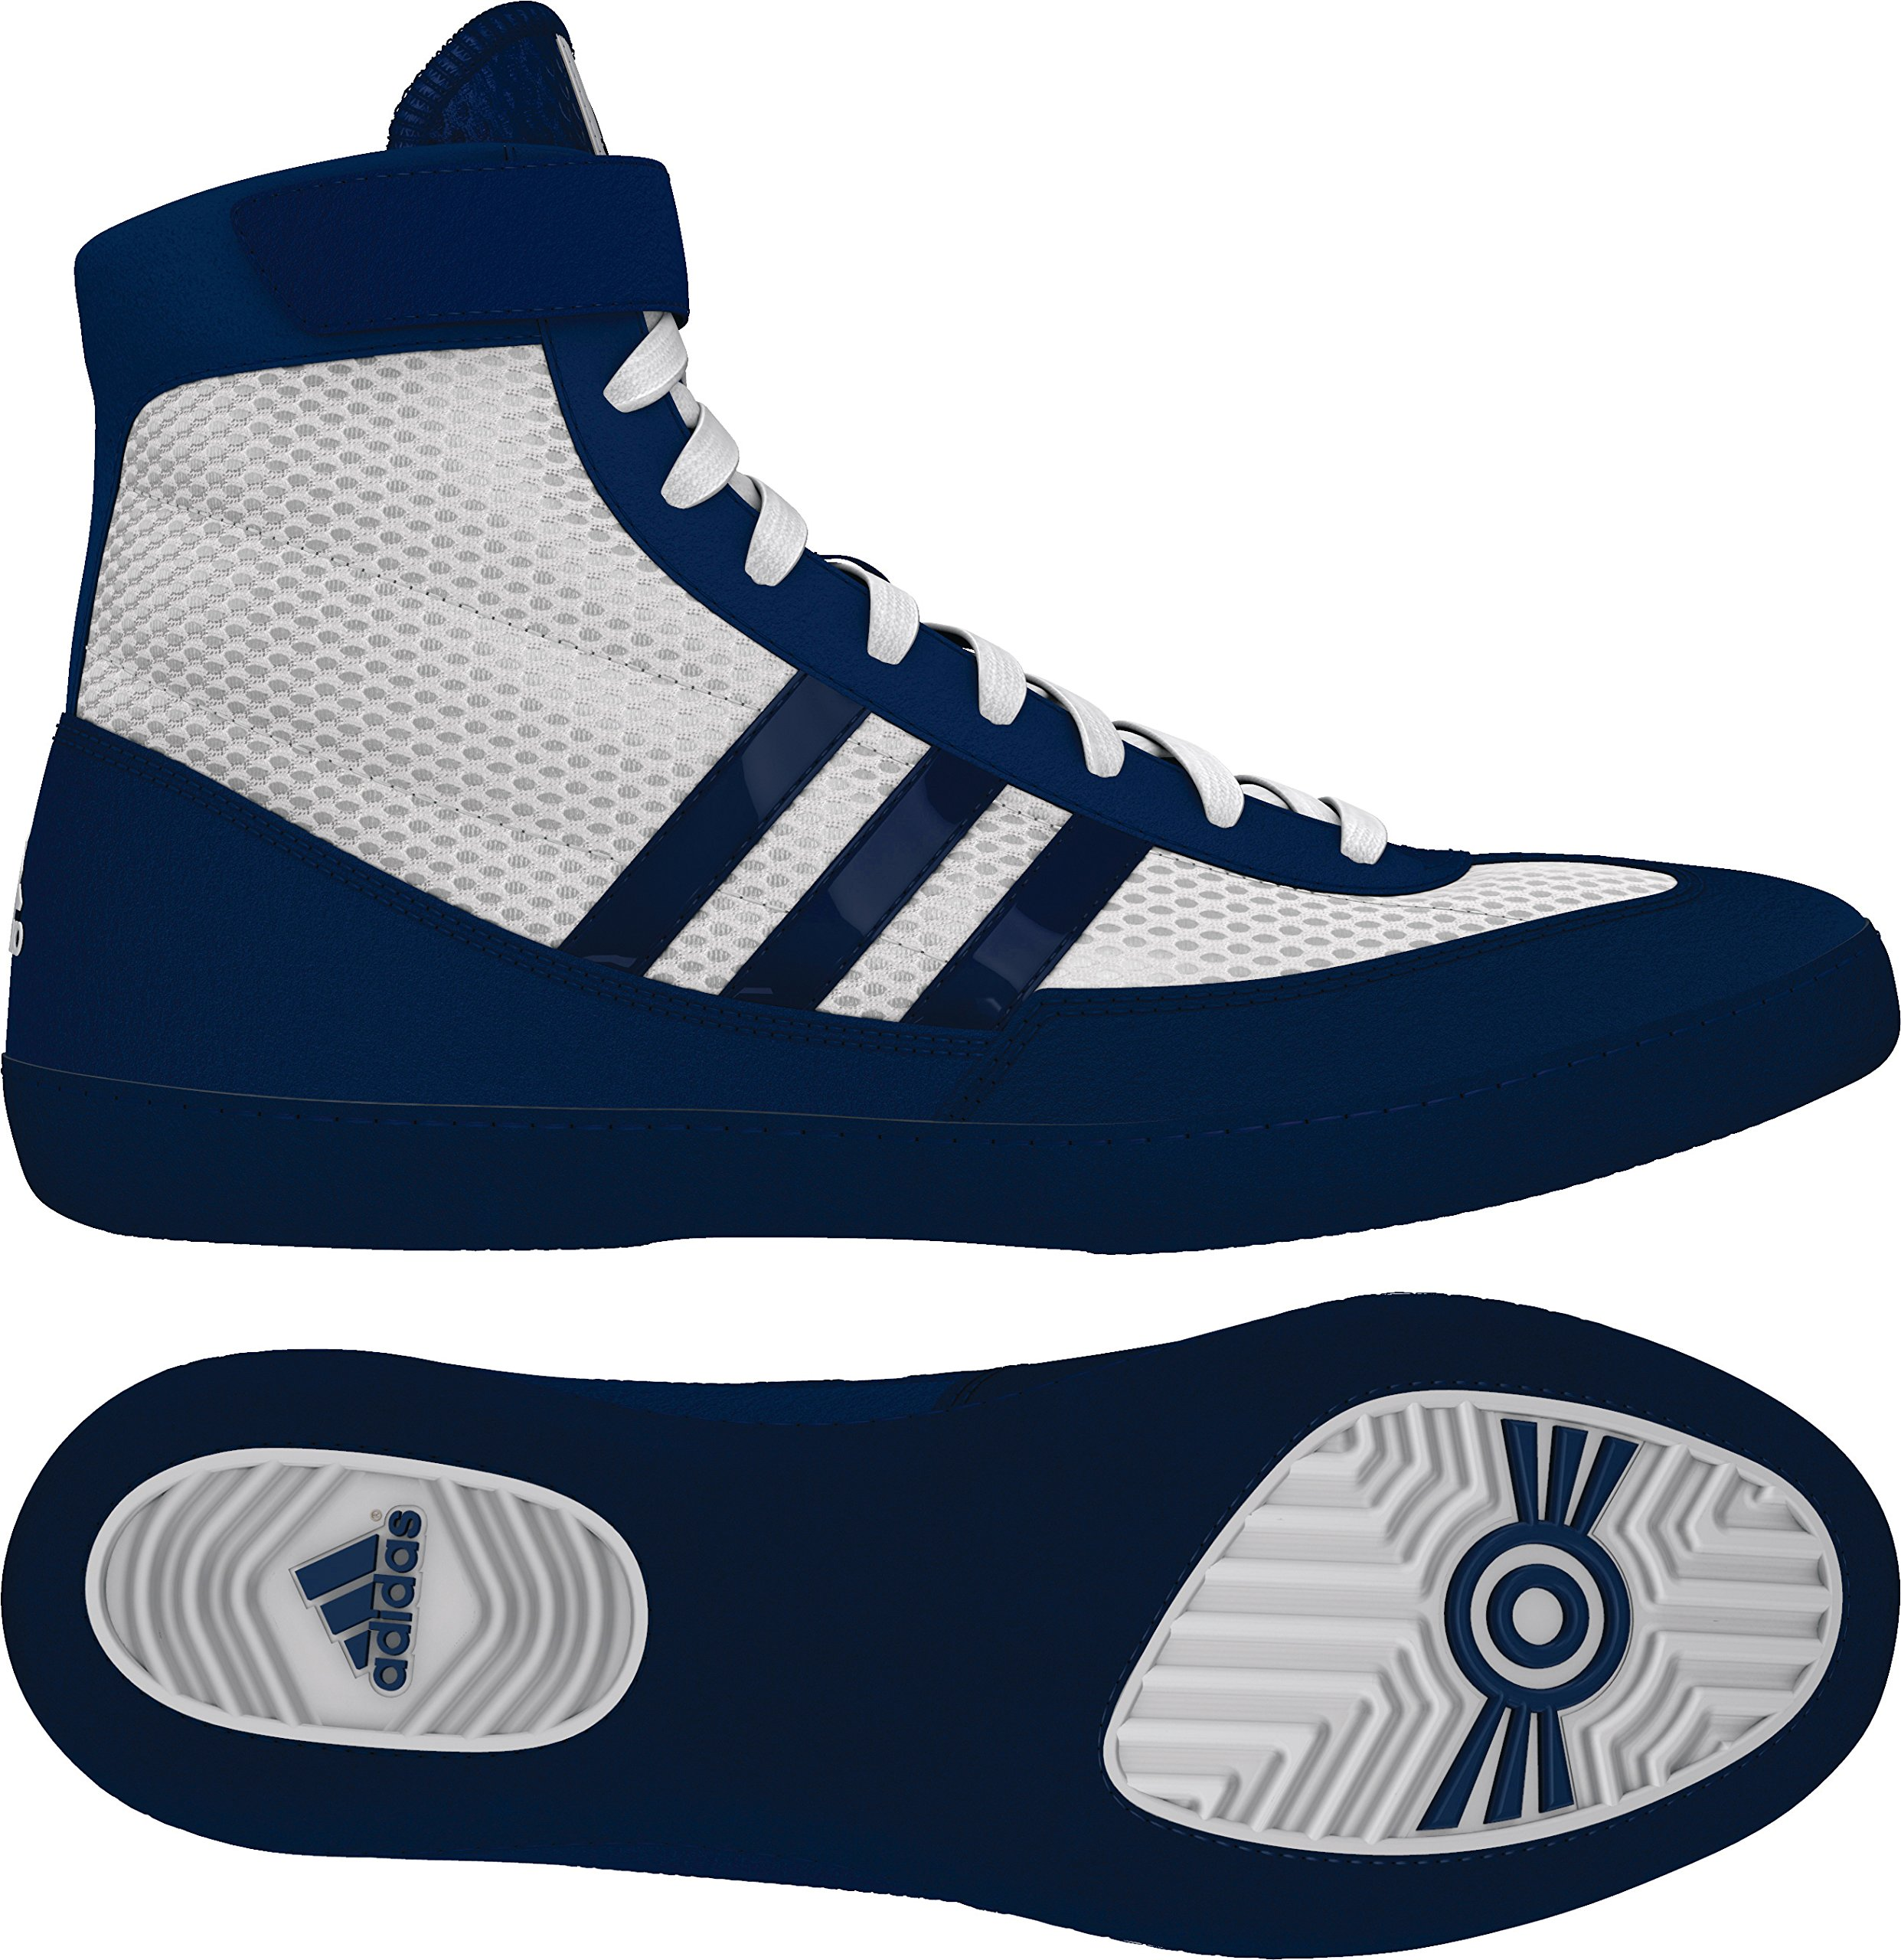 Adidas Combat Speed 4 Youth Wrestling Shoes - White/Navy/White - 5 by adidas